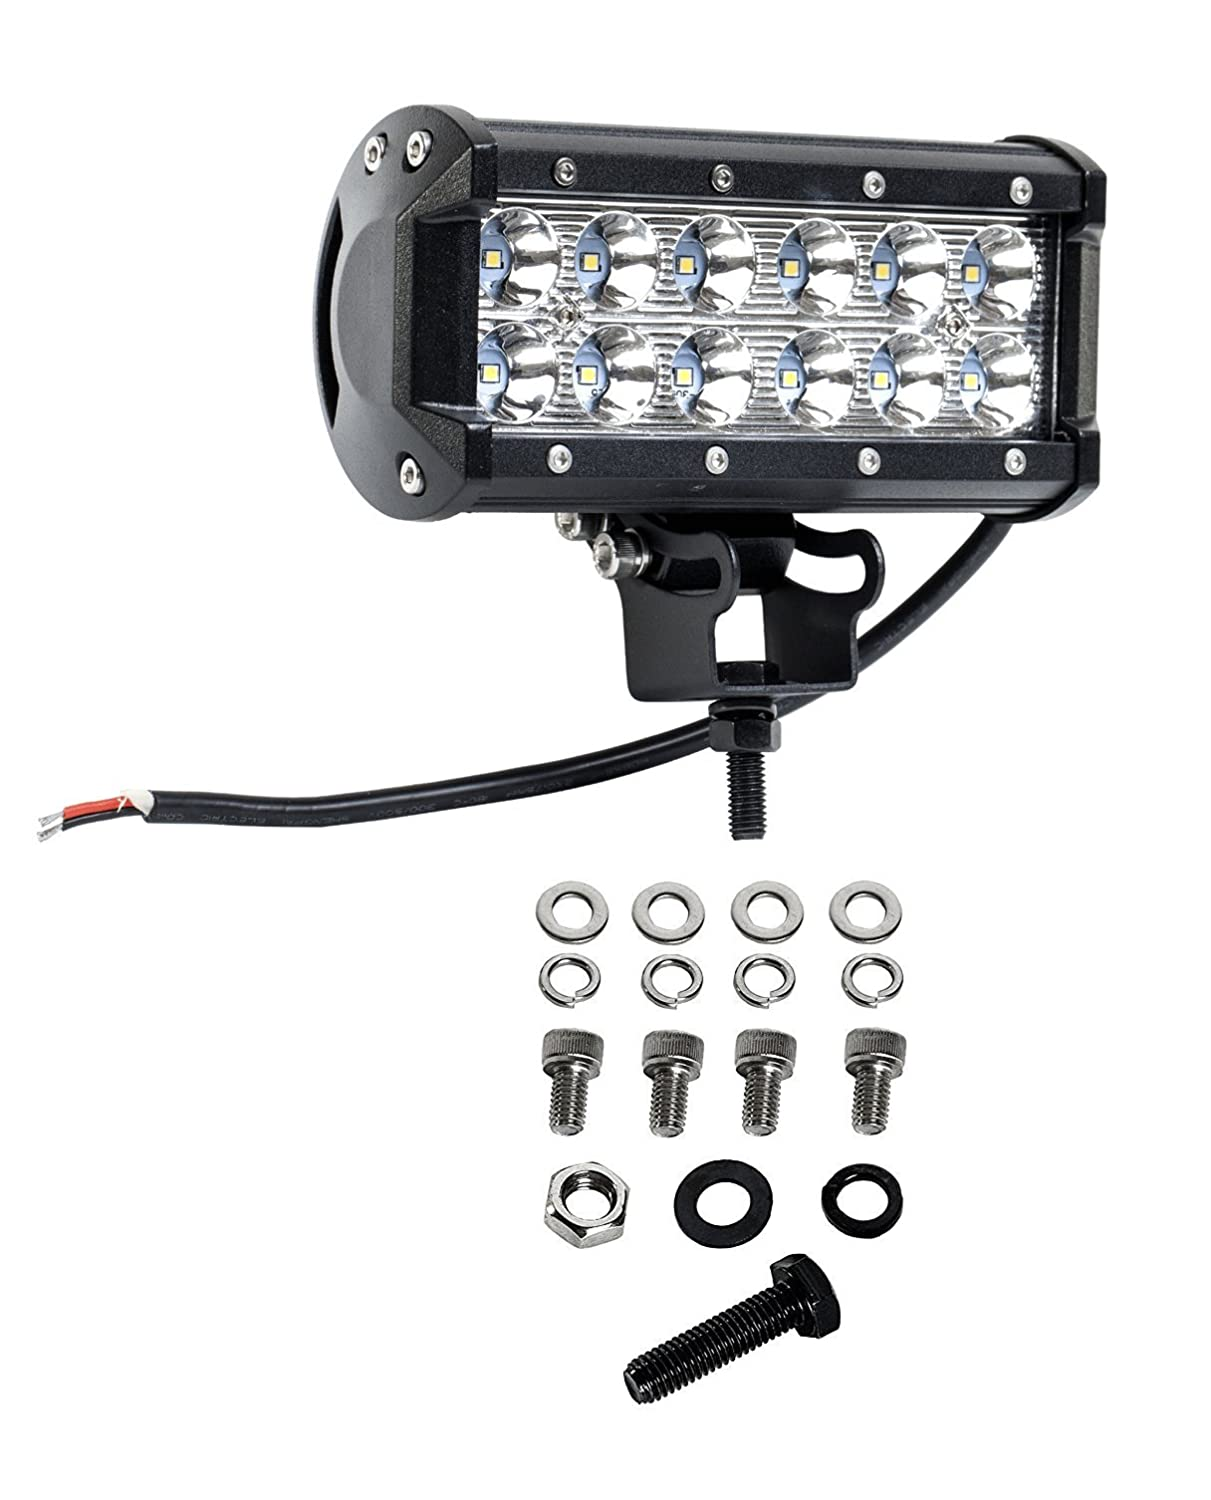 Cutequeen 4 X 36w 3600 Lumens Cree LED Spot Light for Off-road Rv Atv SUV Boat 4x4 Jeep Lamp Tractor Marine Off-road Lighting